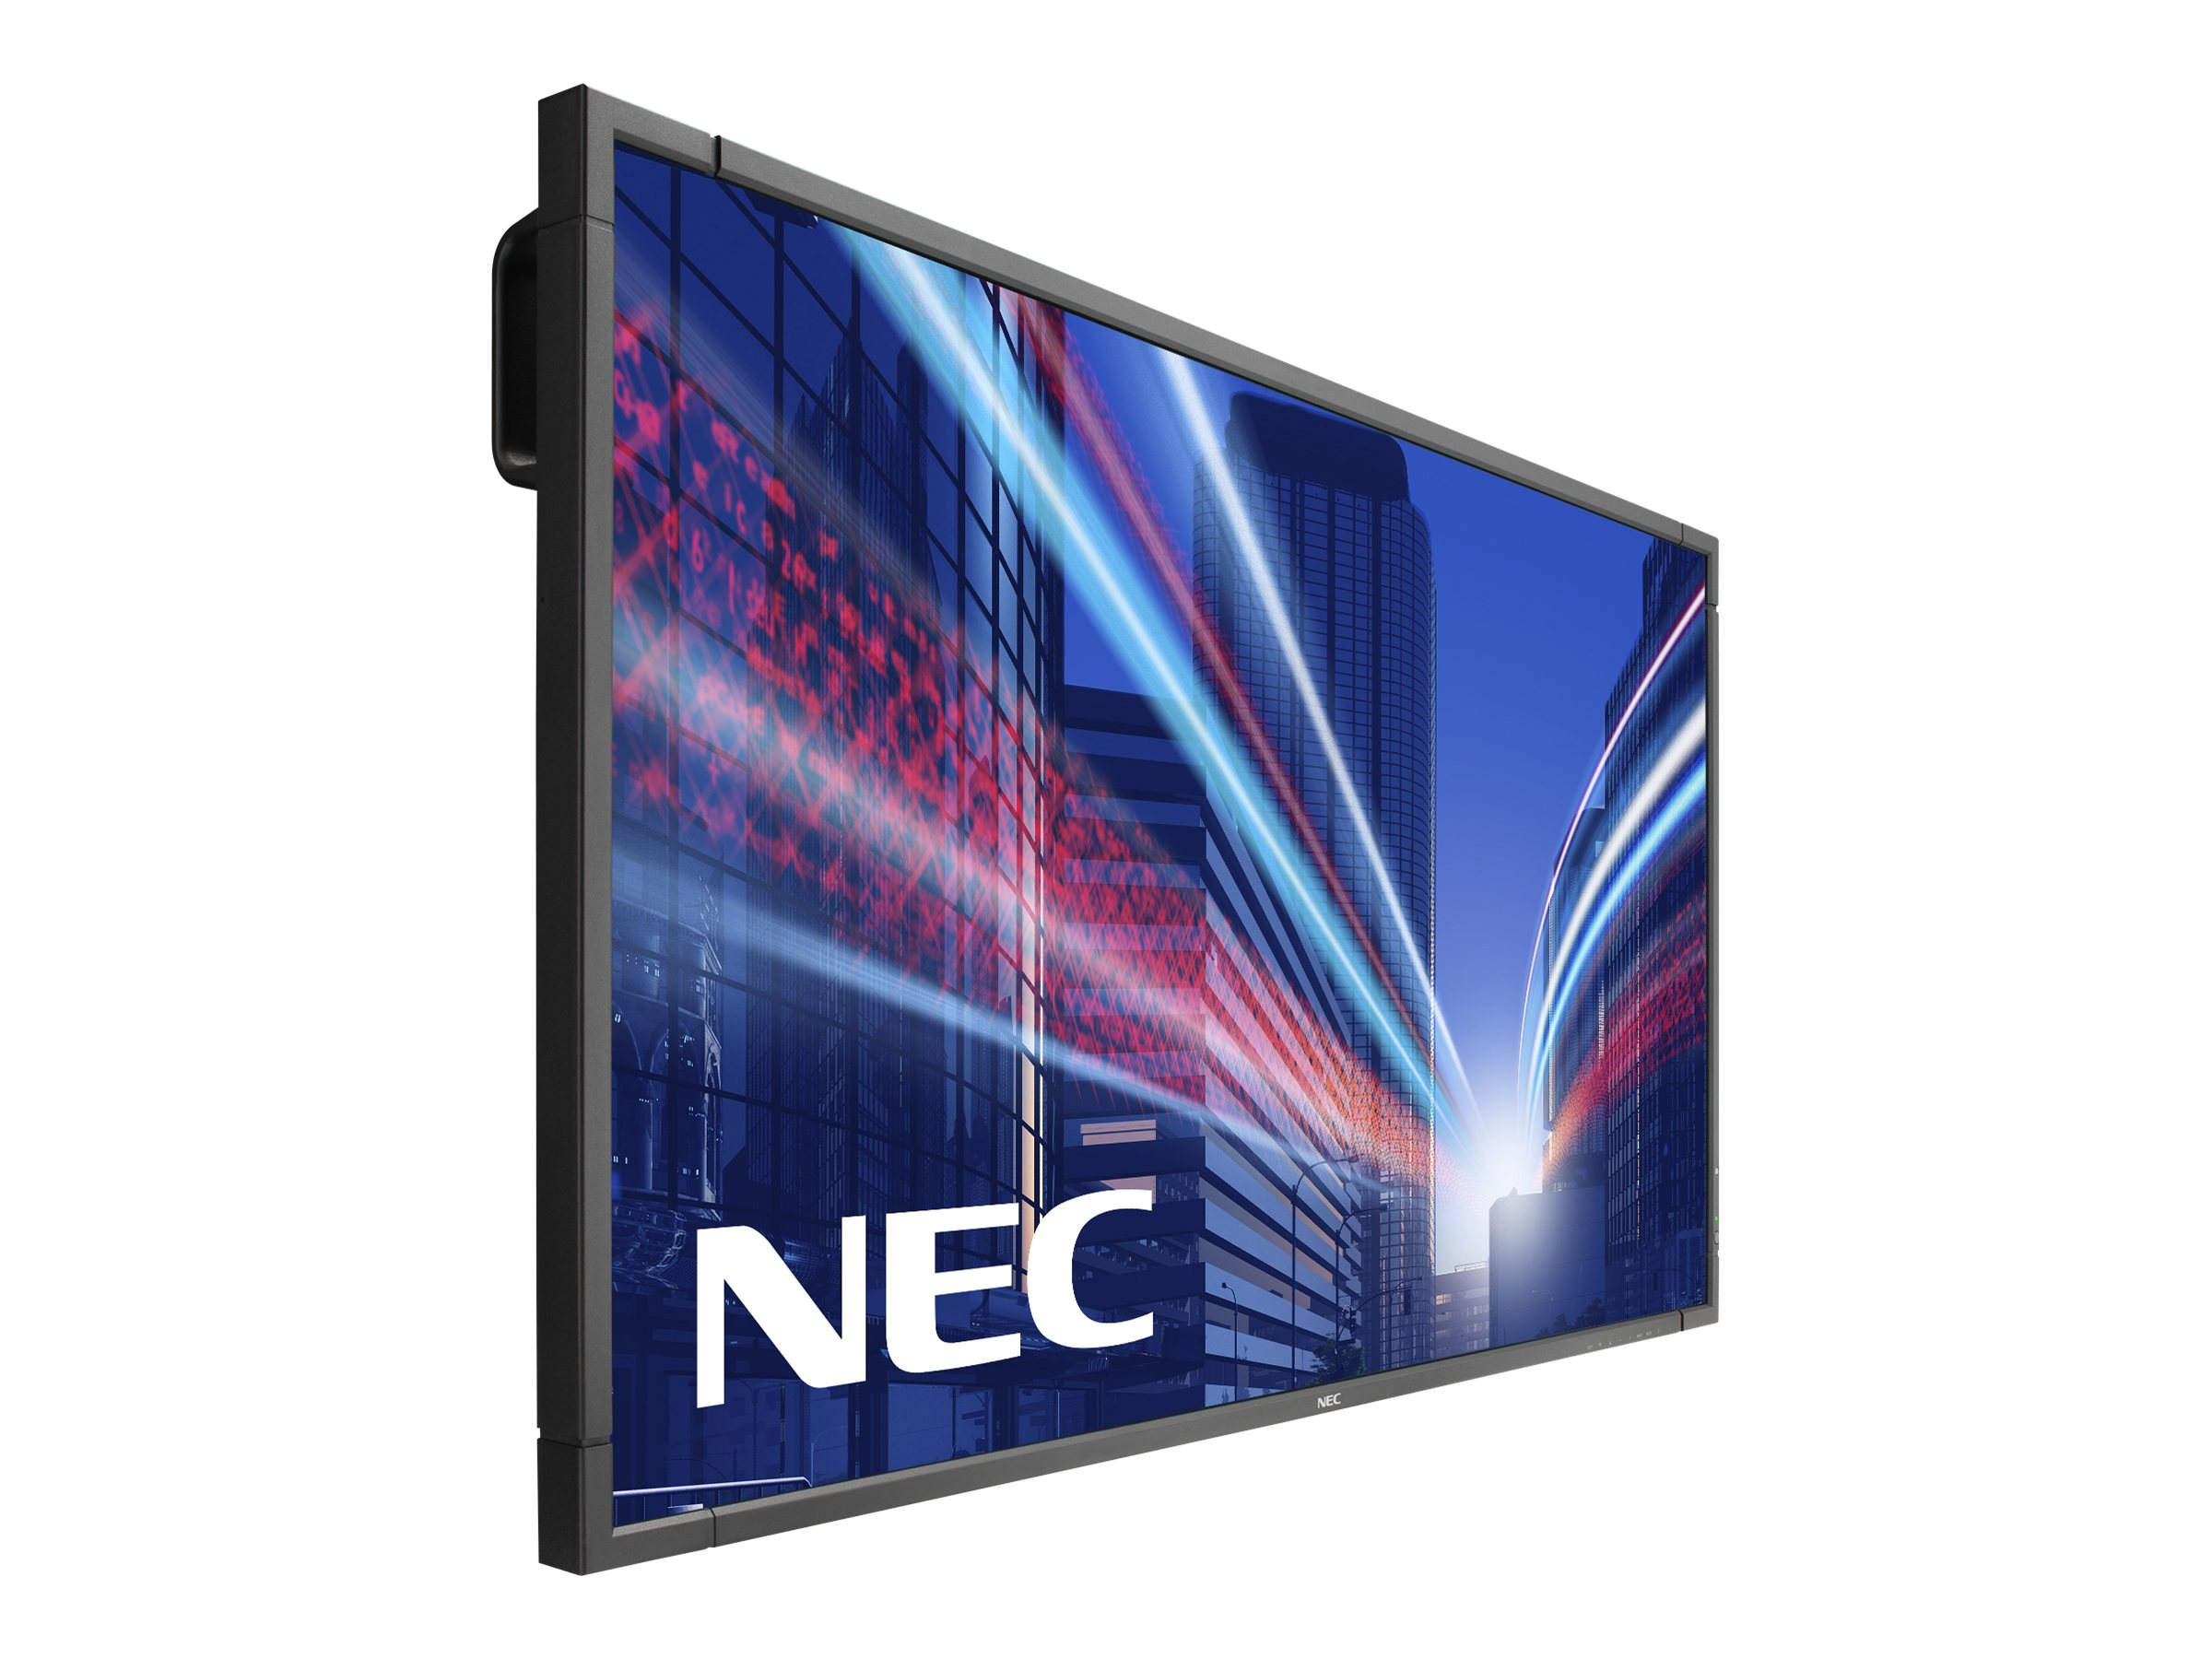 NEC 46 P463 Full HD LED-LCD Monitor, Black, P463